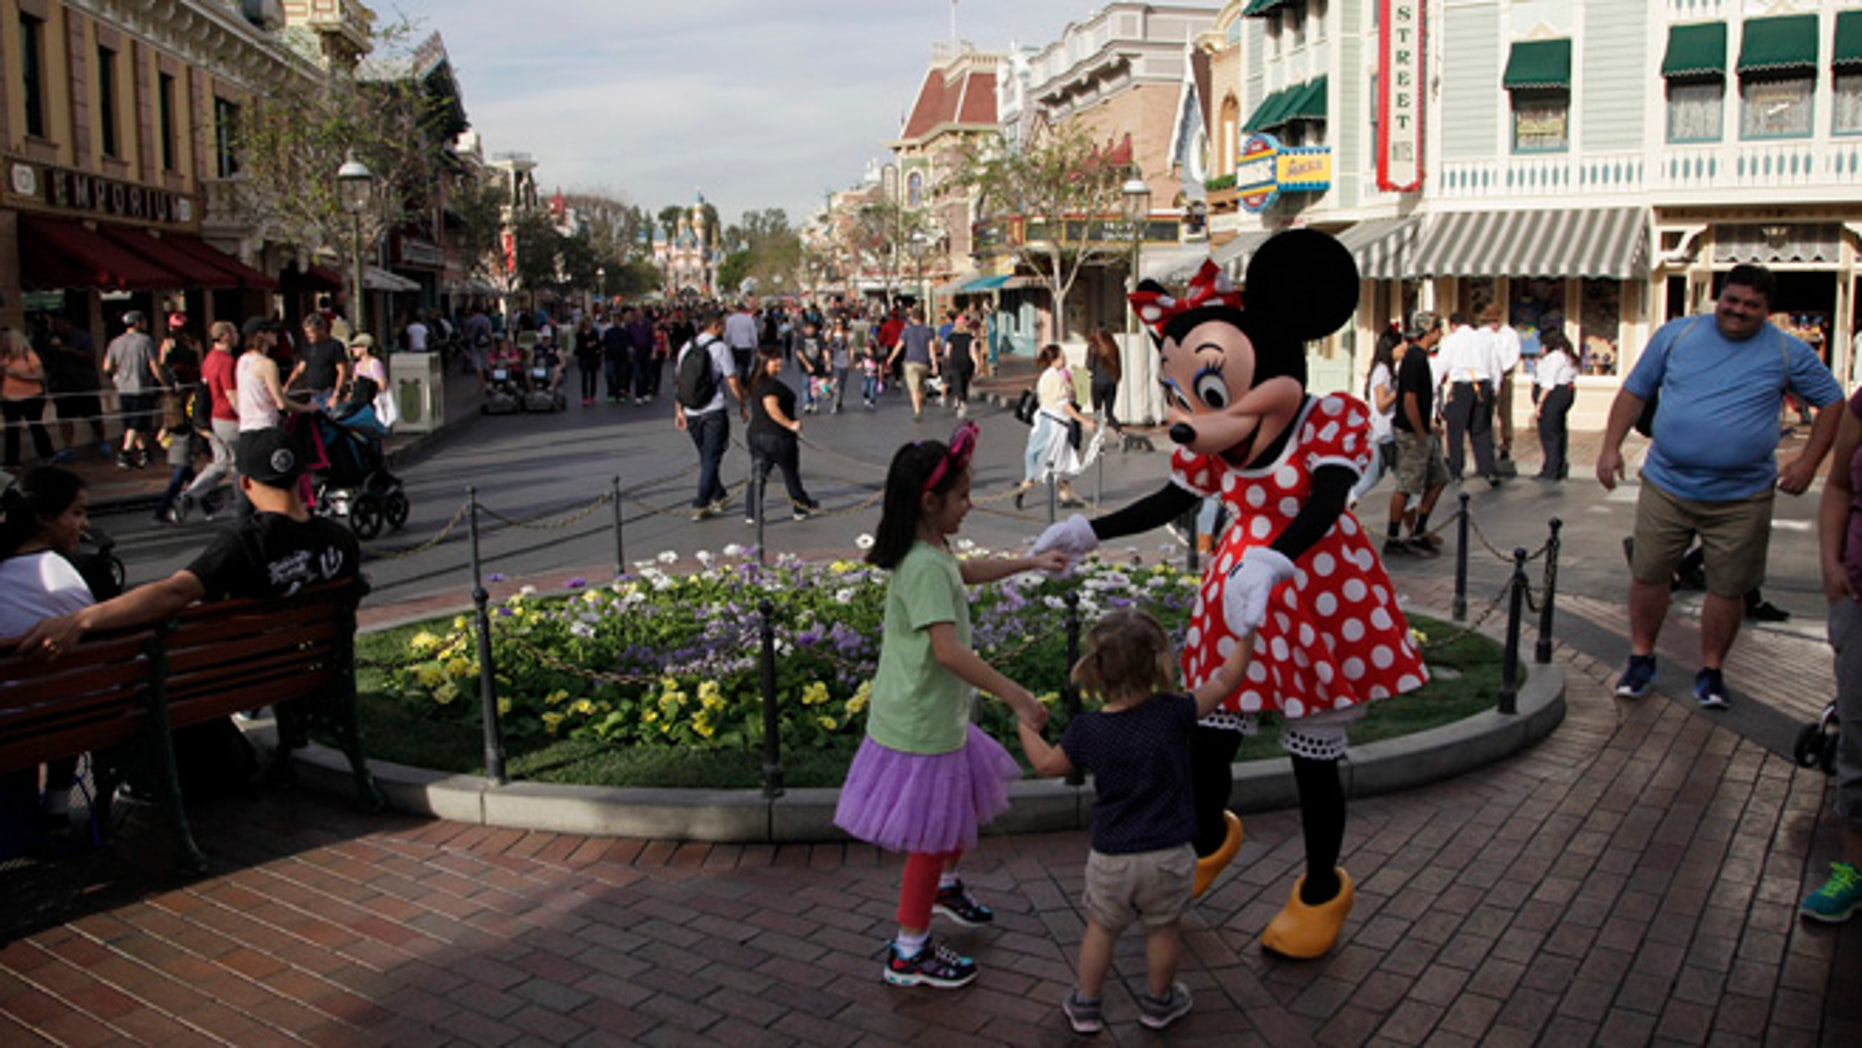 Minnie Mouse dances with visitors at Disneyland, Thursday, Jan. 22, 2015, in Anaheim, Calif. A major measles outbreak traced to Disneyland has brought criticism down on the small but vocal movement among parents to opt out of vaccinations for their children. (AP Photo/Jae C. Hong)